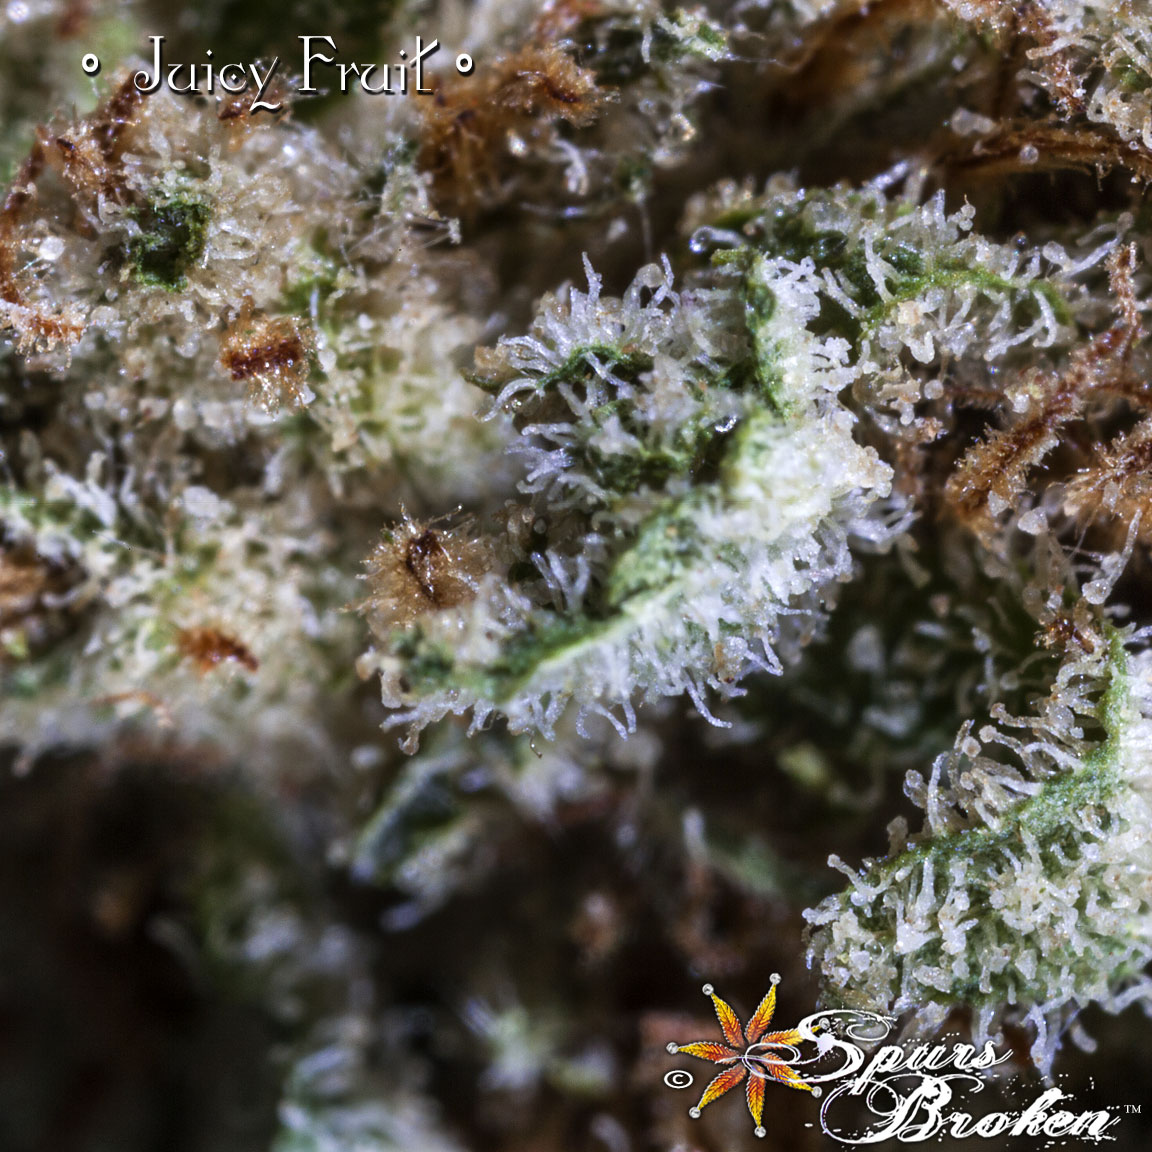 Juicy Fruit - Cannabis Macro Photography by Spurs Broken (Robert R. Sanders)